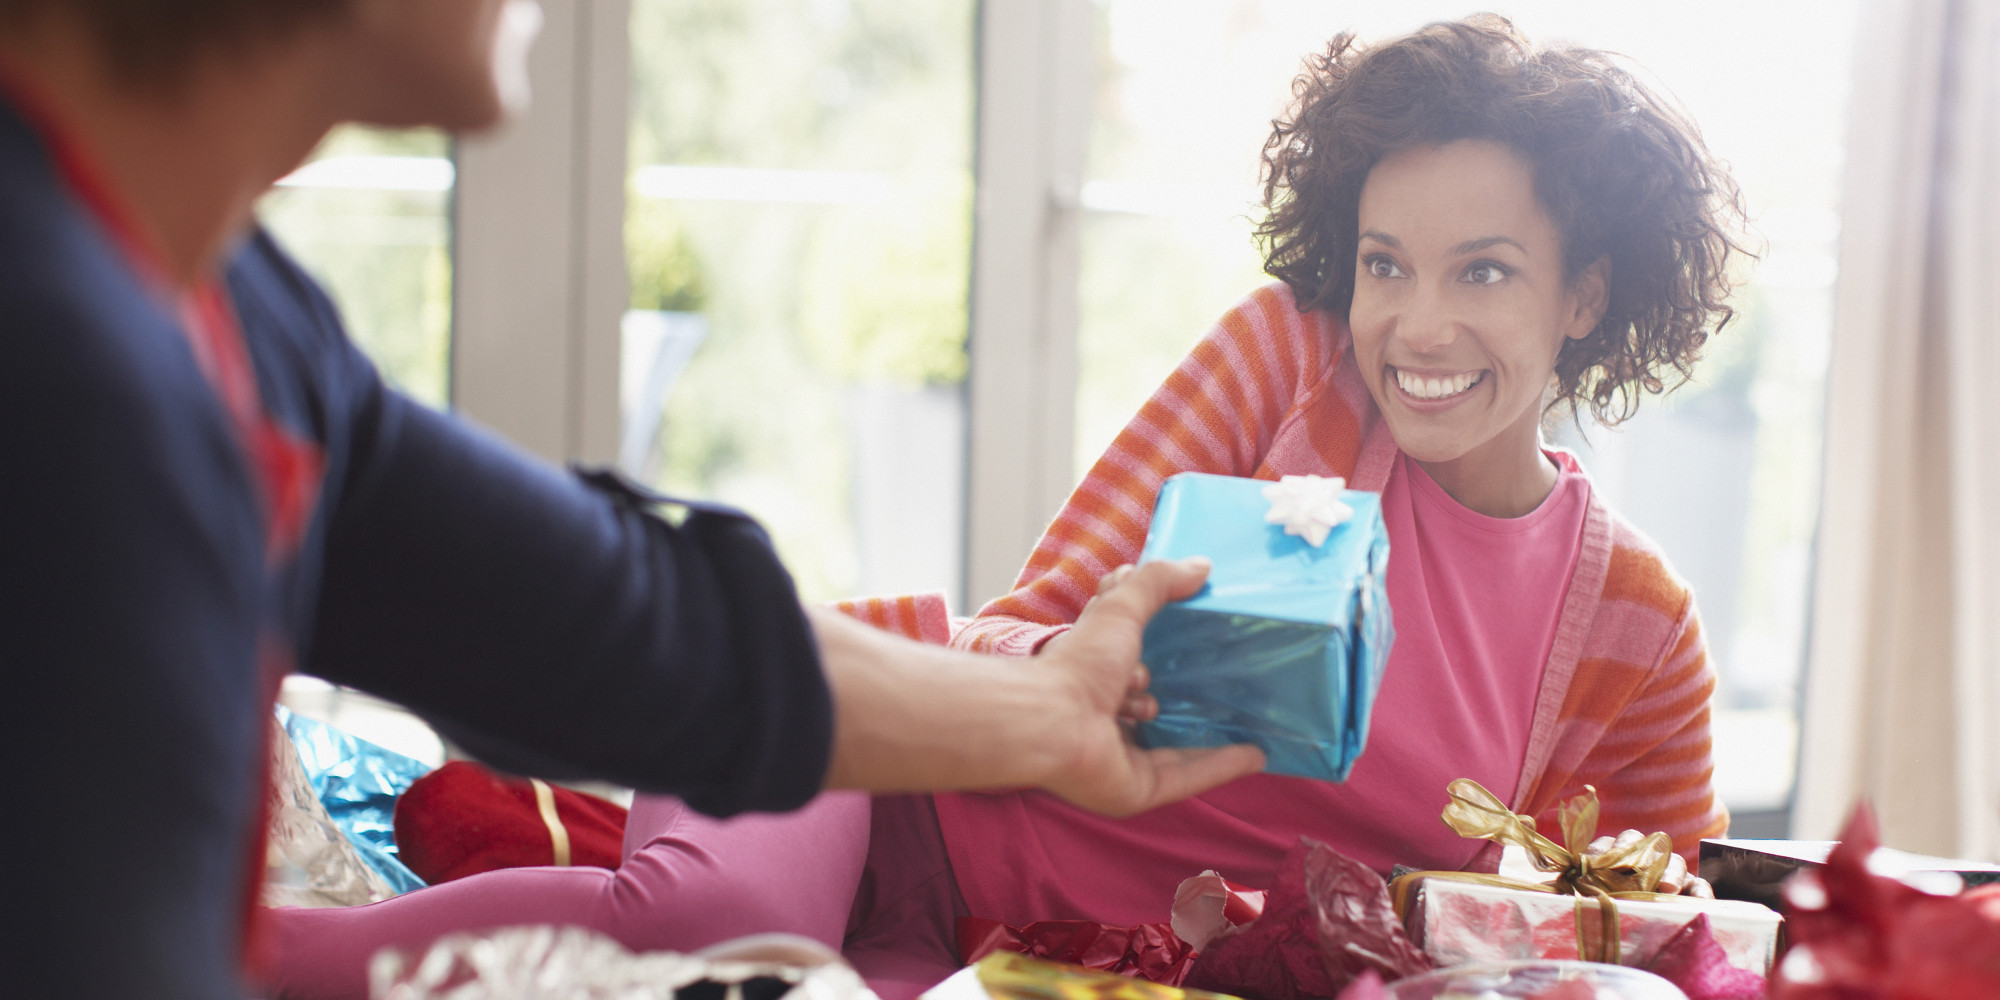 Christmas gifts for someone you're dating